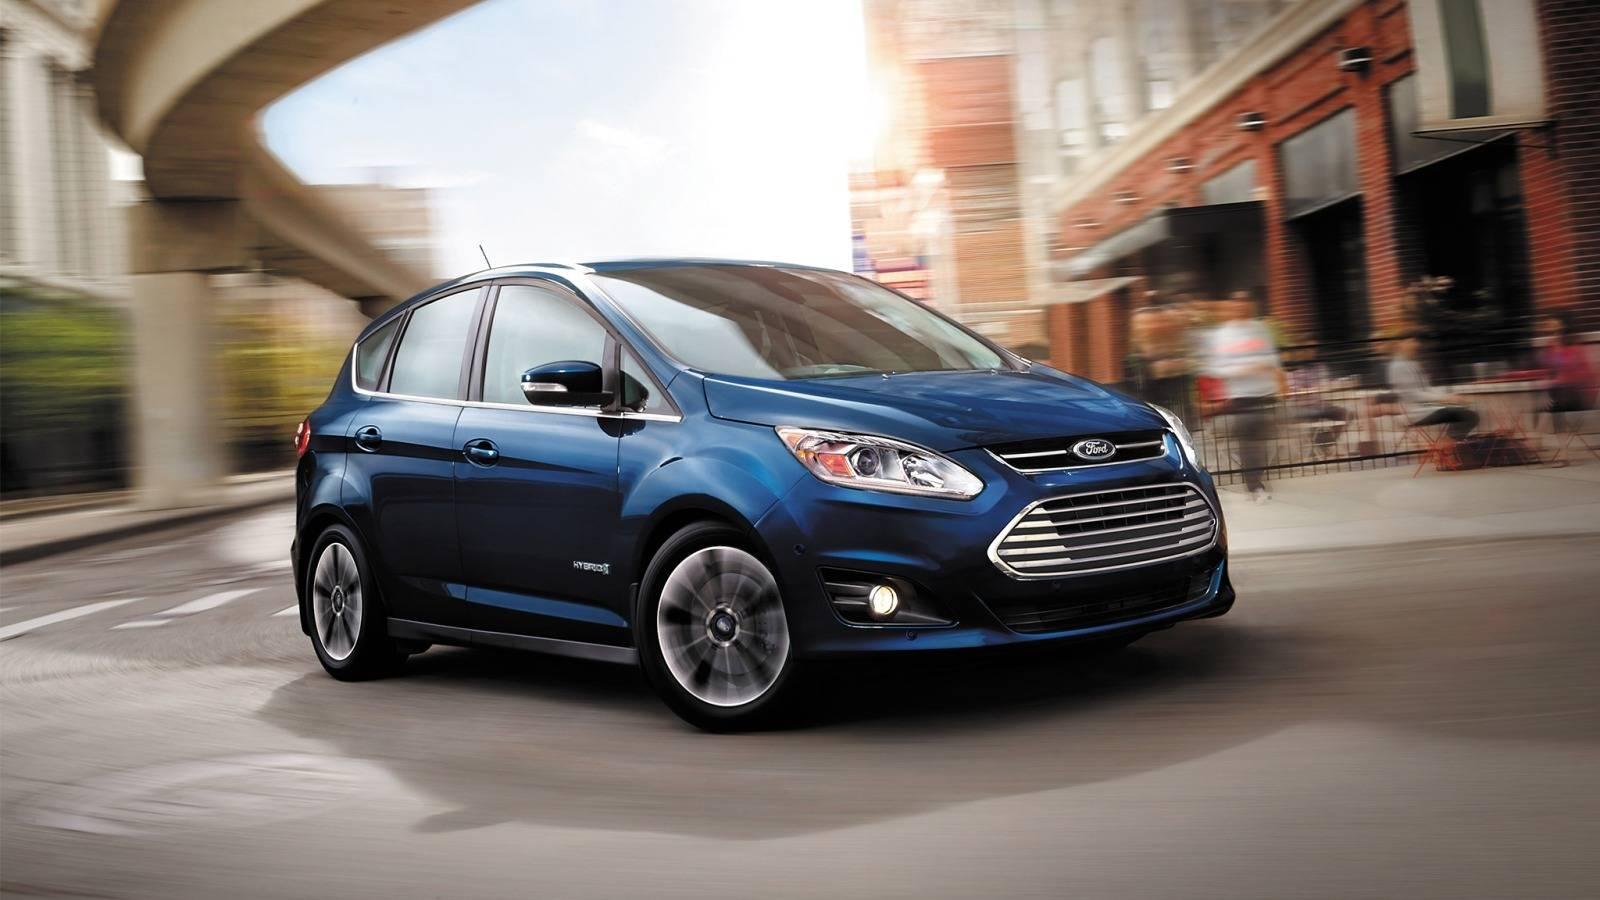 Ford C-Max in Manassas